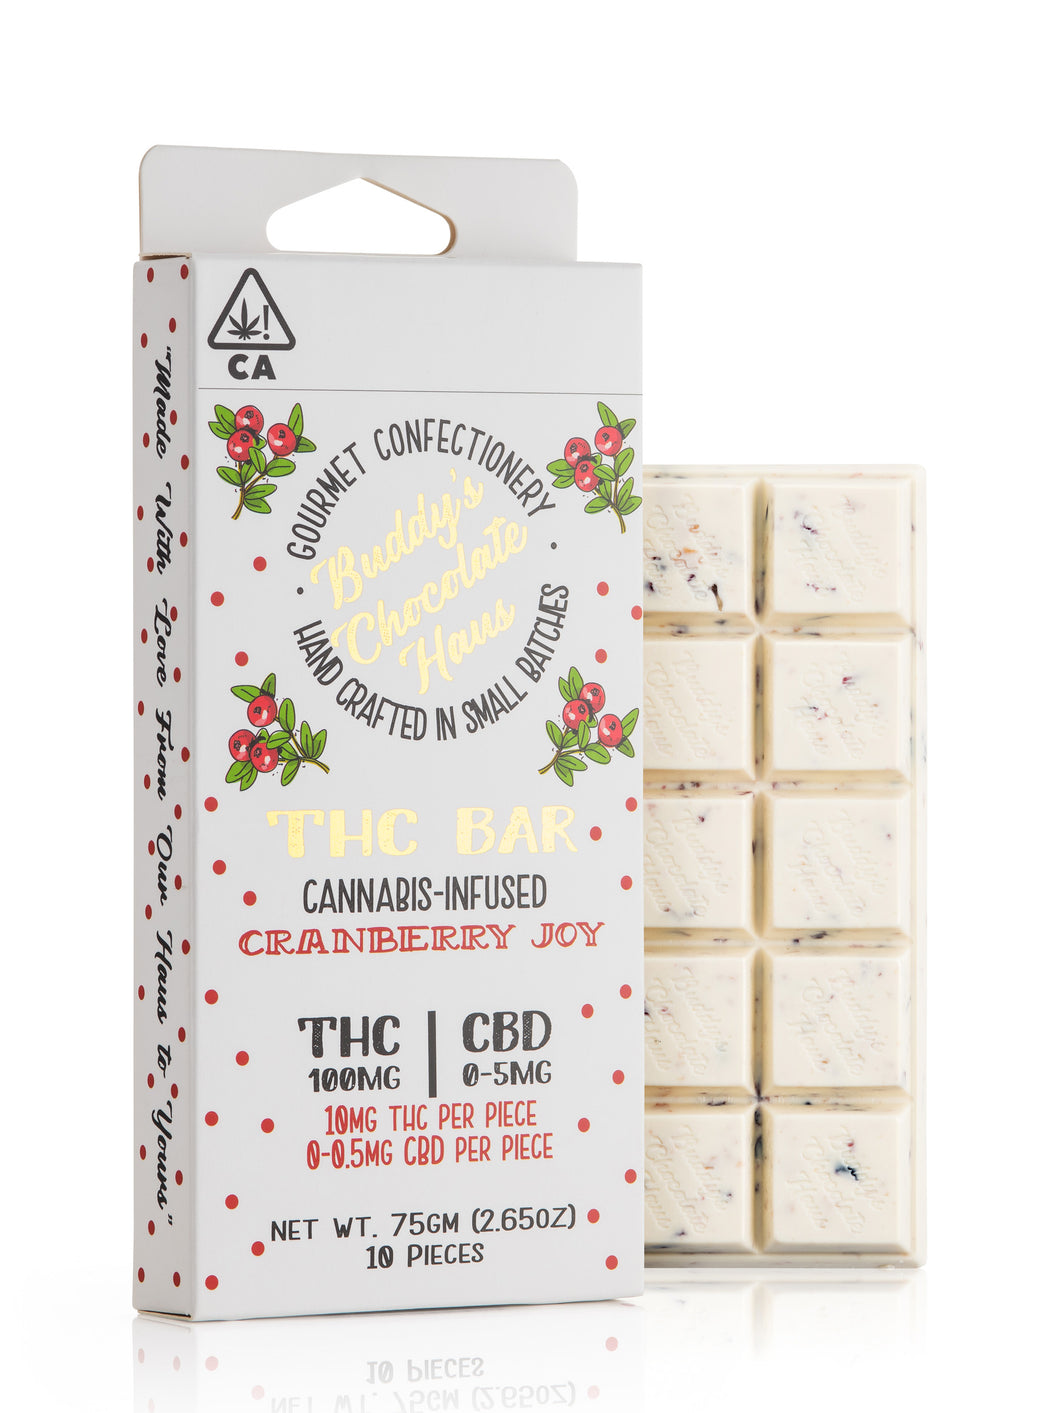 Cranberry Joy THC Bar 100mg